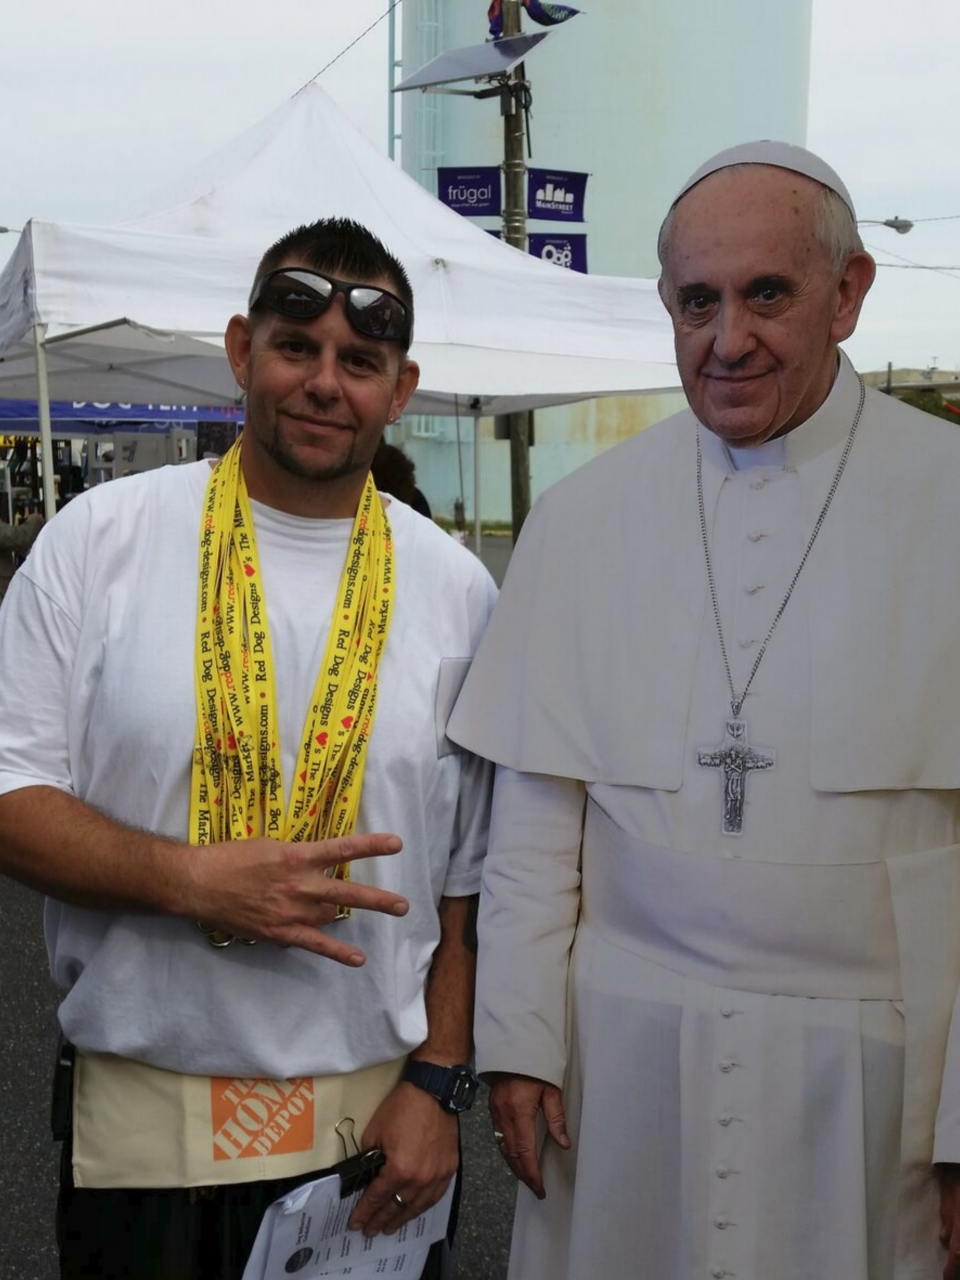 Joe and the Pope